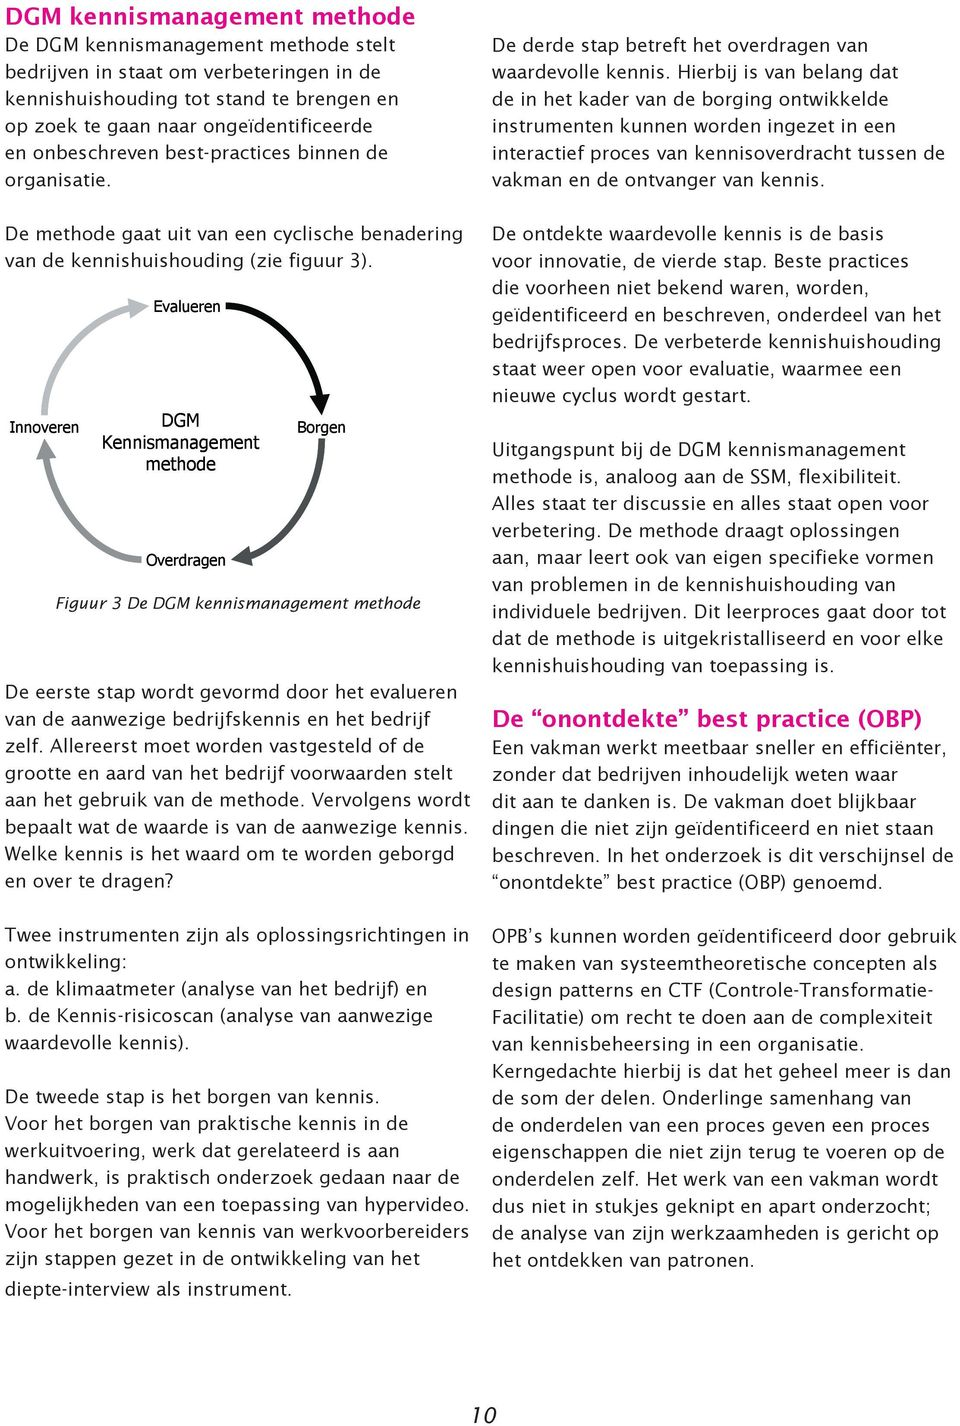 Innoveren Evalueren DGM Kennismanagement methode Overdragen Borgen Figuur 3 De DGM kennismanagement methode De eerste stap wordt gevormd door het evalueren van de aanwezige bedrijfskennis en het